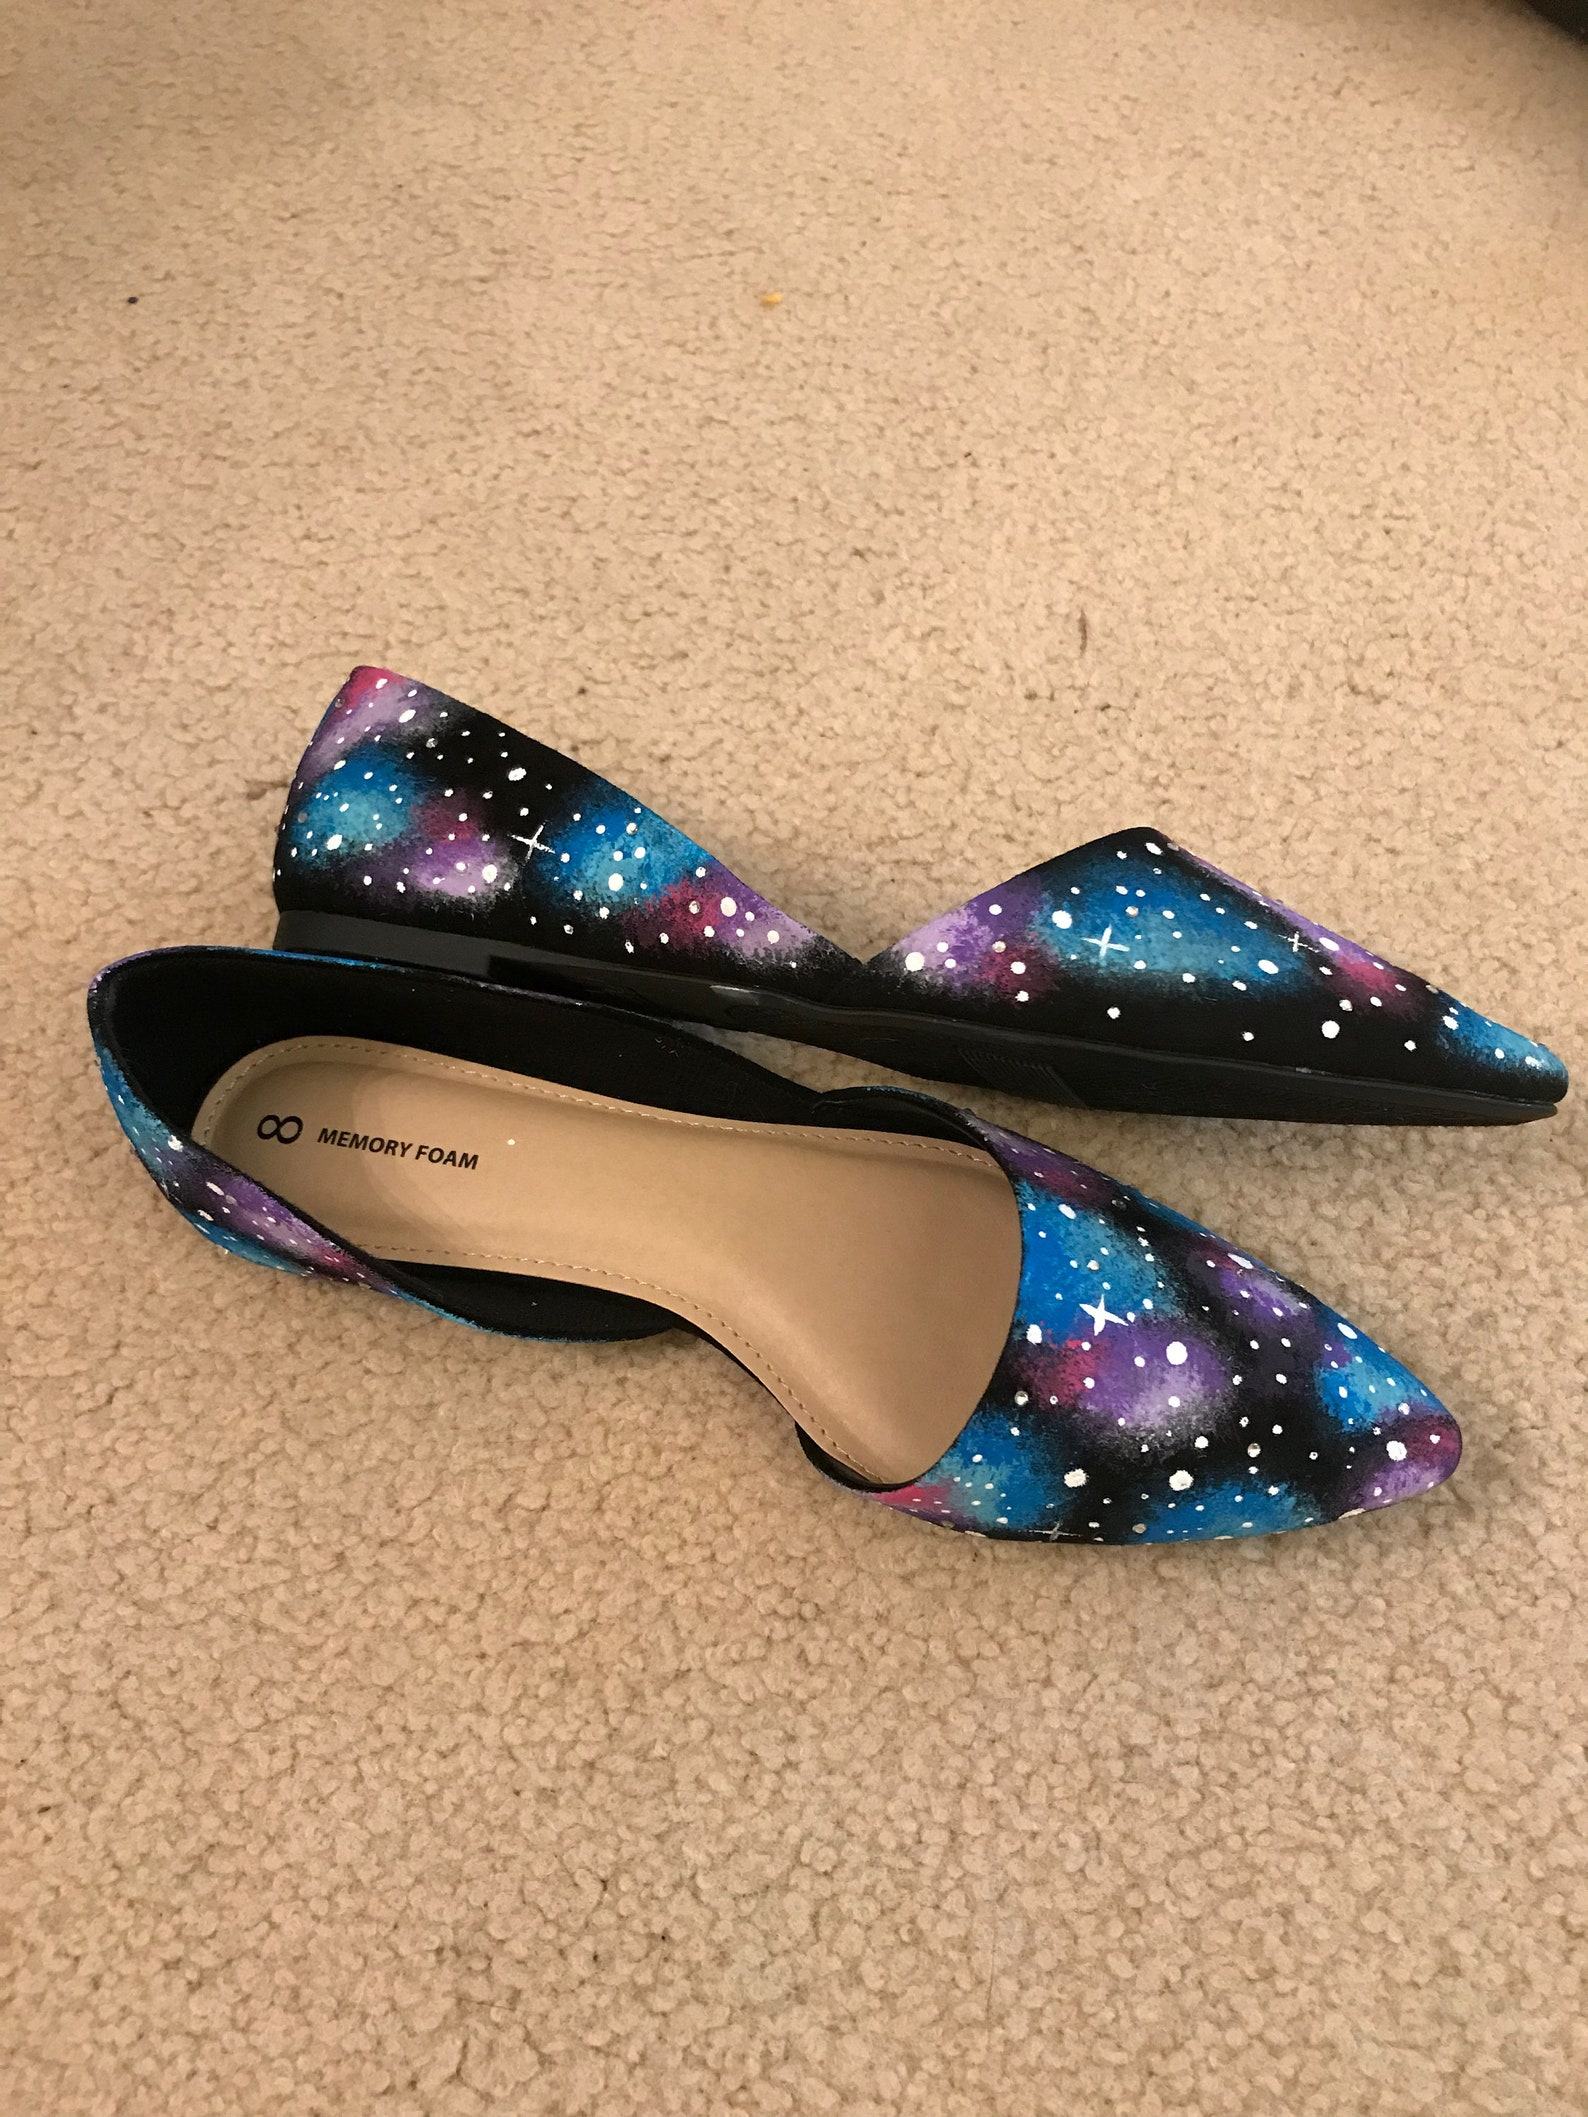 galaxy hand painted ballet flat pointed shoes with rhinestones. women's size 7.5 & size 8